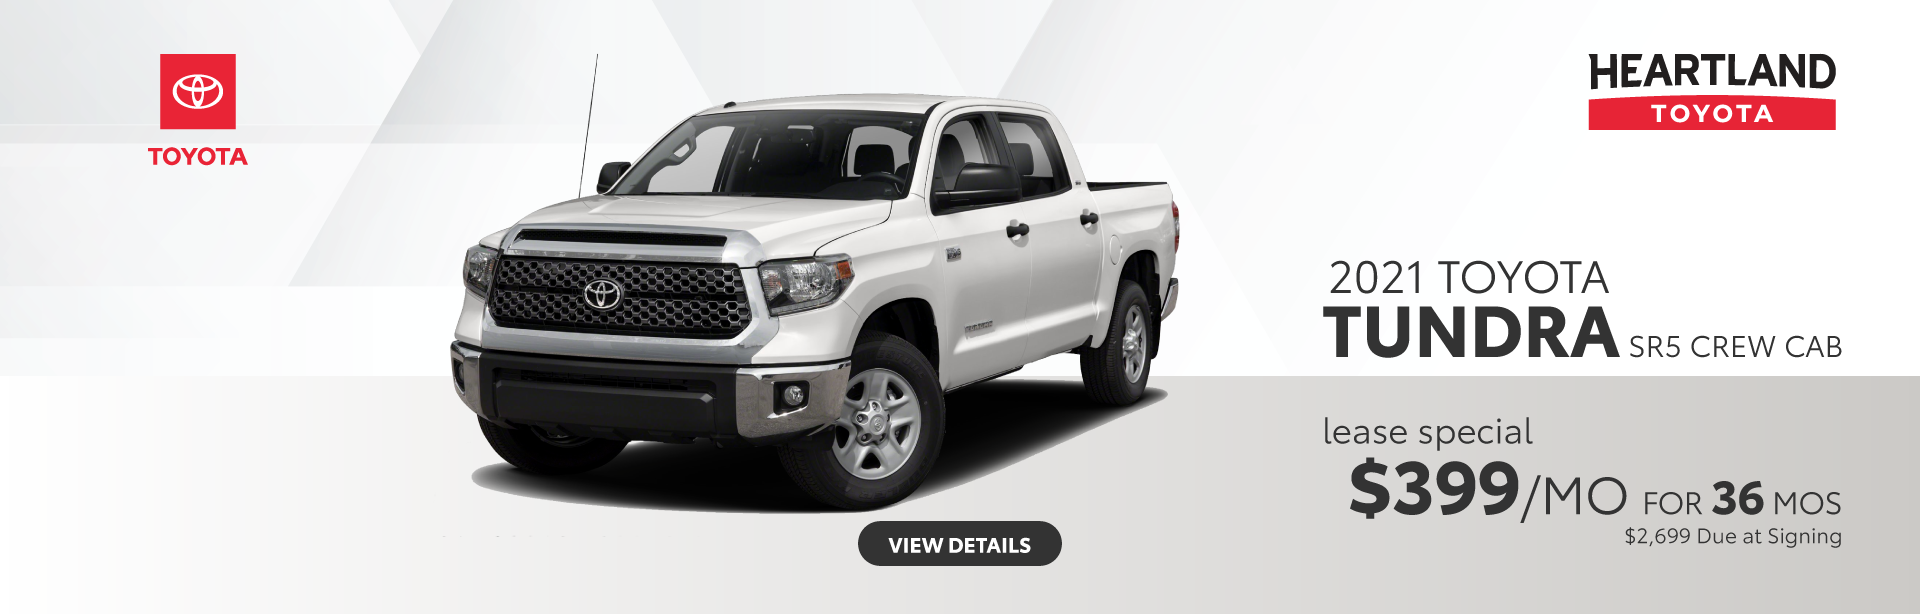 2021 Toyota Tundra SR5 Crew Cab $399/mo for 36 months $2,699 Due at Signing * *Offer valid on 2021 Toyota Tundra SR5 Crew Cab. $399 per month for 36 months. Including, $3,128.69 in Dealer Discounts. Lease with $2,699 due at signing; includes a $695 acquisition fee. Valid on VIN: 5TFDY5F14MX986184, 5TFDY5F12MX975006. MSRP $42,615. Lease is through TFS. Subject to credit approval. No Security deposit required. Excludes taxes, title, and fees. 36 monthly payments required. Not all lessees will qualify for lowest payment through participating lender. Residency restrictions apply. Lessee responsible for mileage over 10,000 miles per year at $0.15/mile per year. Option to purchase at lease end. A negotiable dealer documentary service fee of up to $150 may be added to the sale price or capitalized cost. Offer expires 2/1/2021.